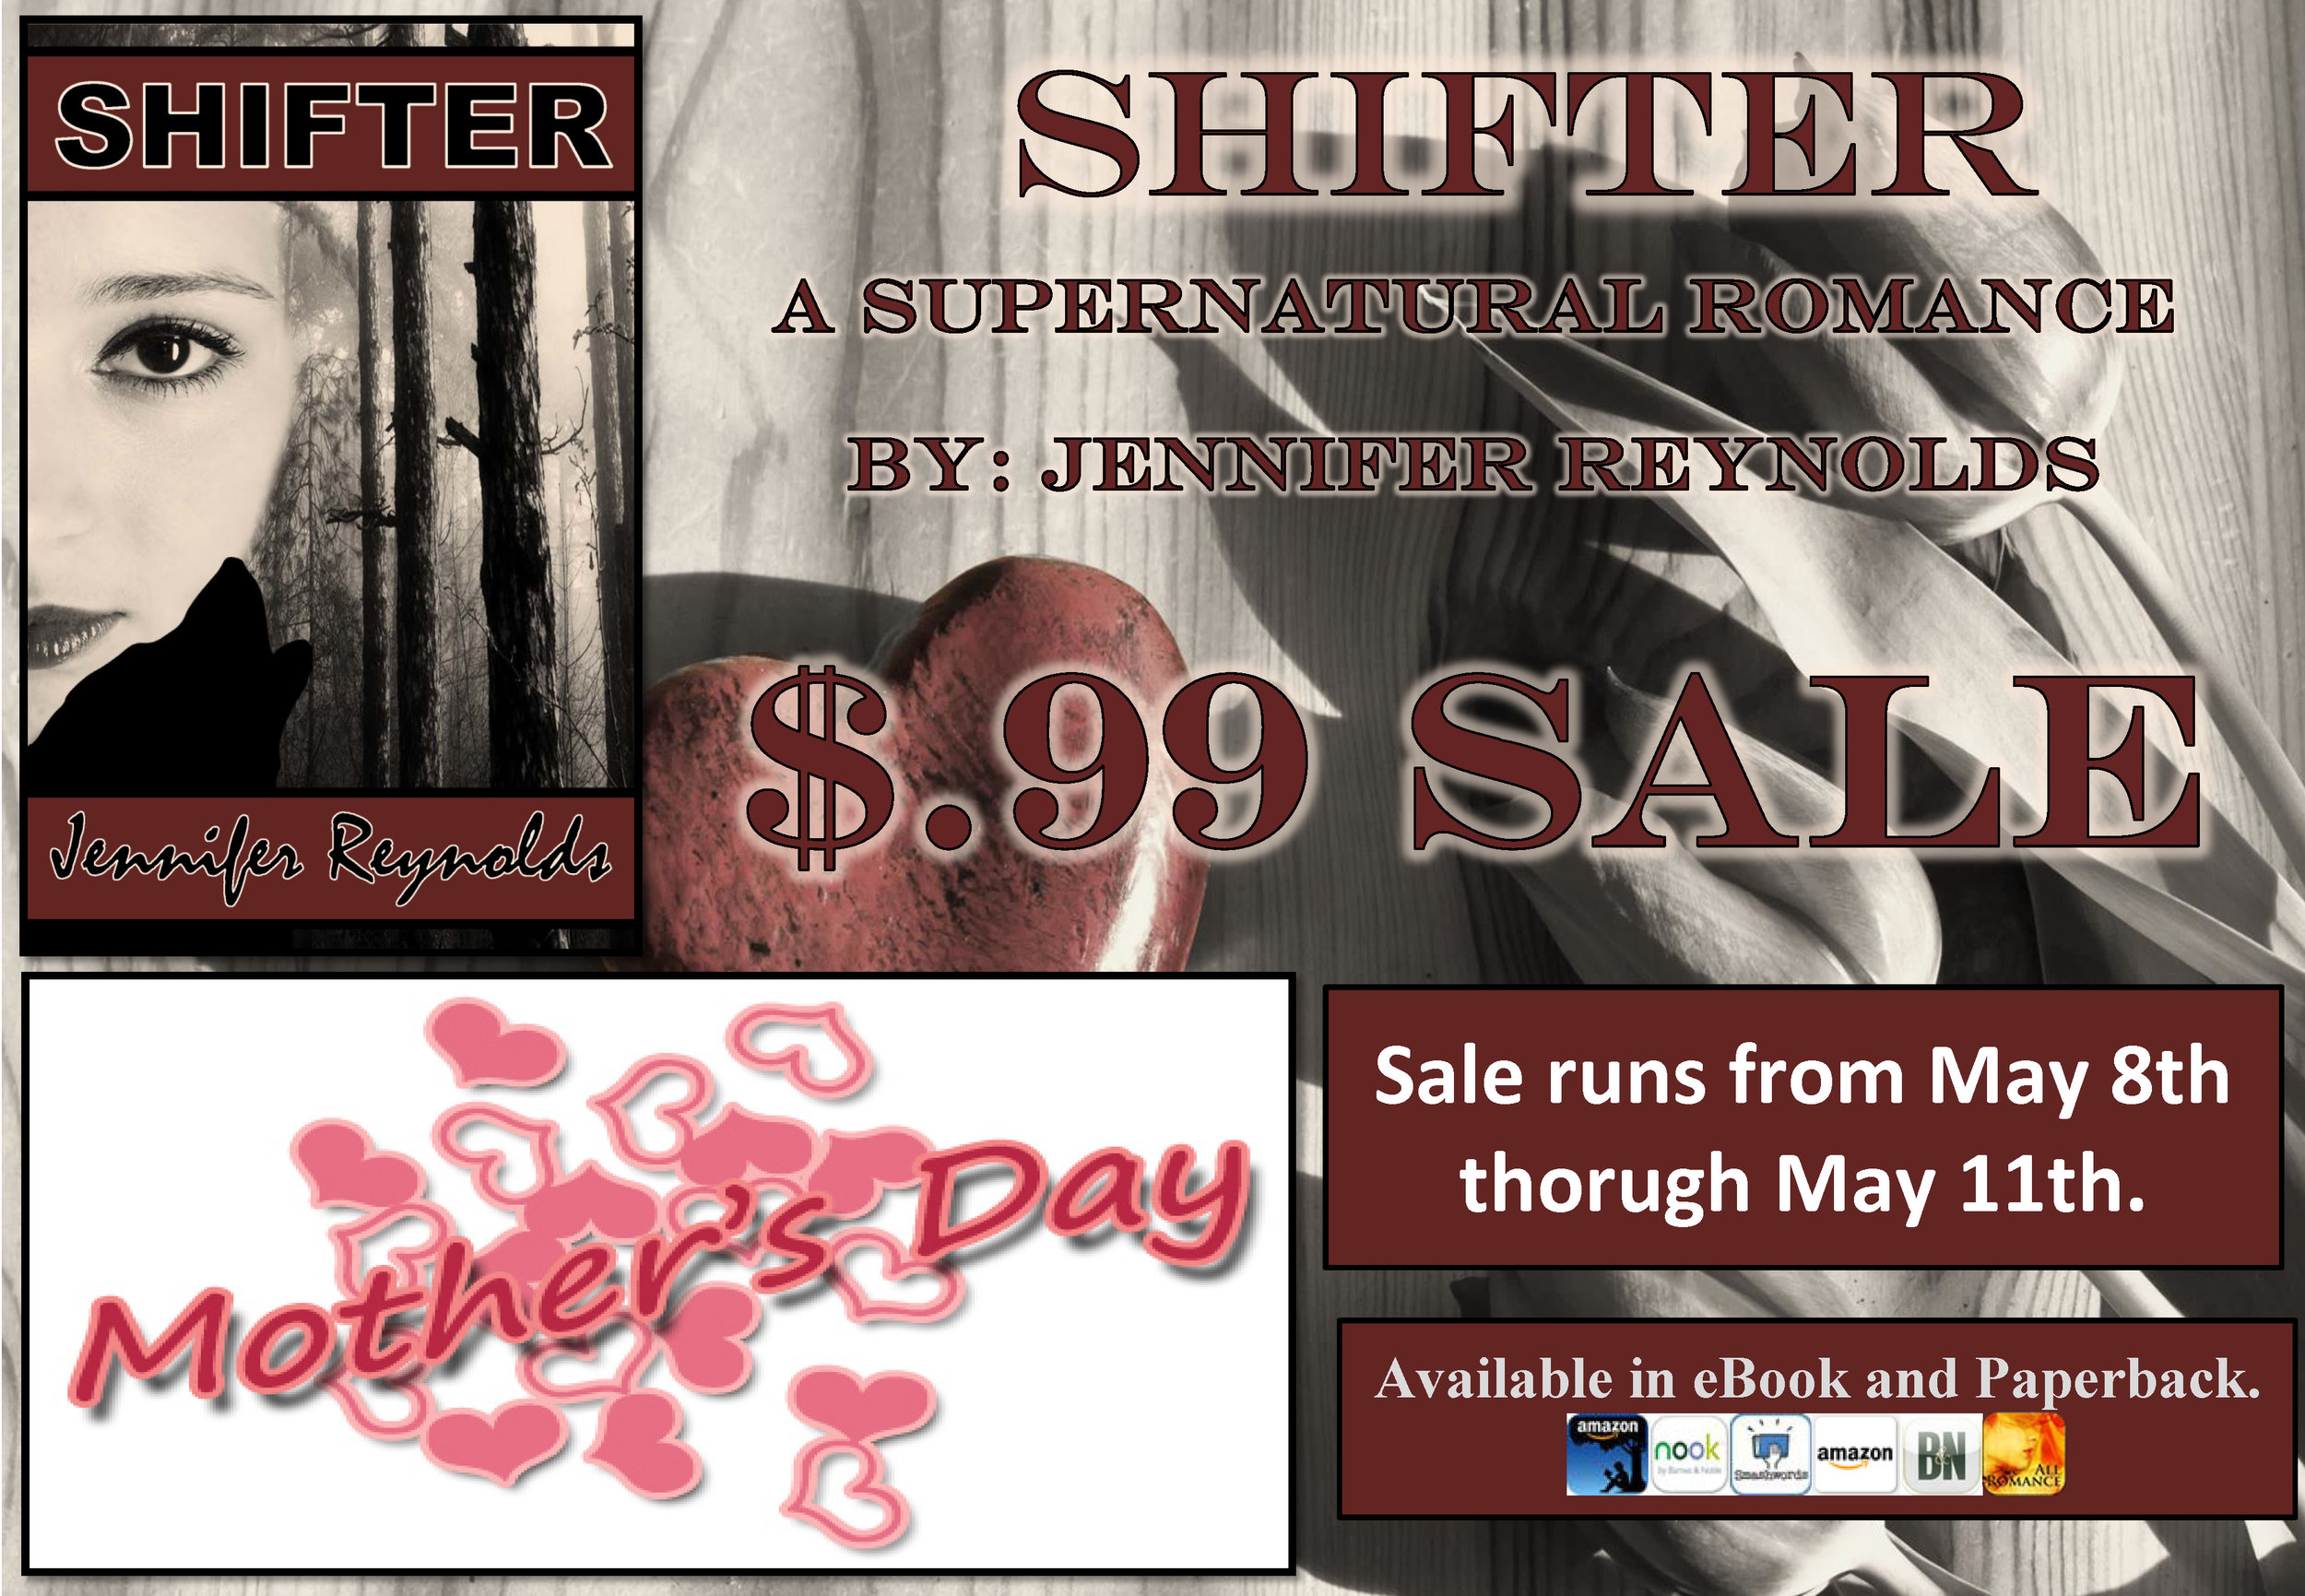 ***$.99 cent MOTHER'S DAY SALE.***    Join Dimitri and Abby in their fight against a psychotic witch and vicious werewolves to find out if their love can break Dimitri's curse and give him his life back? Or will they lose each other along the way? SHIFTER is a 374-page, stand-alone eBook for only $3.99. SHIFTER has a 4.49 rating on Goodreads, a 4.6 rating on Amazon, and a 4.6 rating on Smashwords.      http://www.amazon.com/dp/B00M8HLU2U      https://www.smashwords.com/books/view/462262      http://www.barnesandnoble.com/w/books/1120024902?ean=2940149636907      https://www.allromanceebooks.com/product-shifter-1742062-142.html      https://itunes.apple.com/us/book/shifter/id904335011?mt=11      https://store.kobobooks.com/en-US/ebook/shifter-14      https://www.overdrive.com/media/1971202/shifter     #ebook #paranormal #romance #BBW #shapeshifter   #kindle #Reynolds